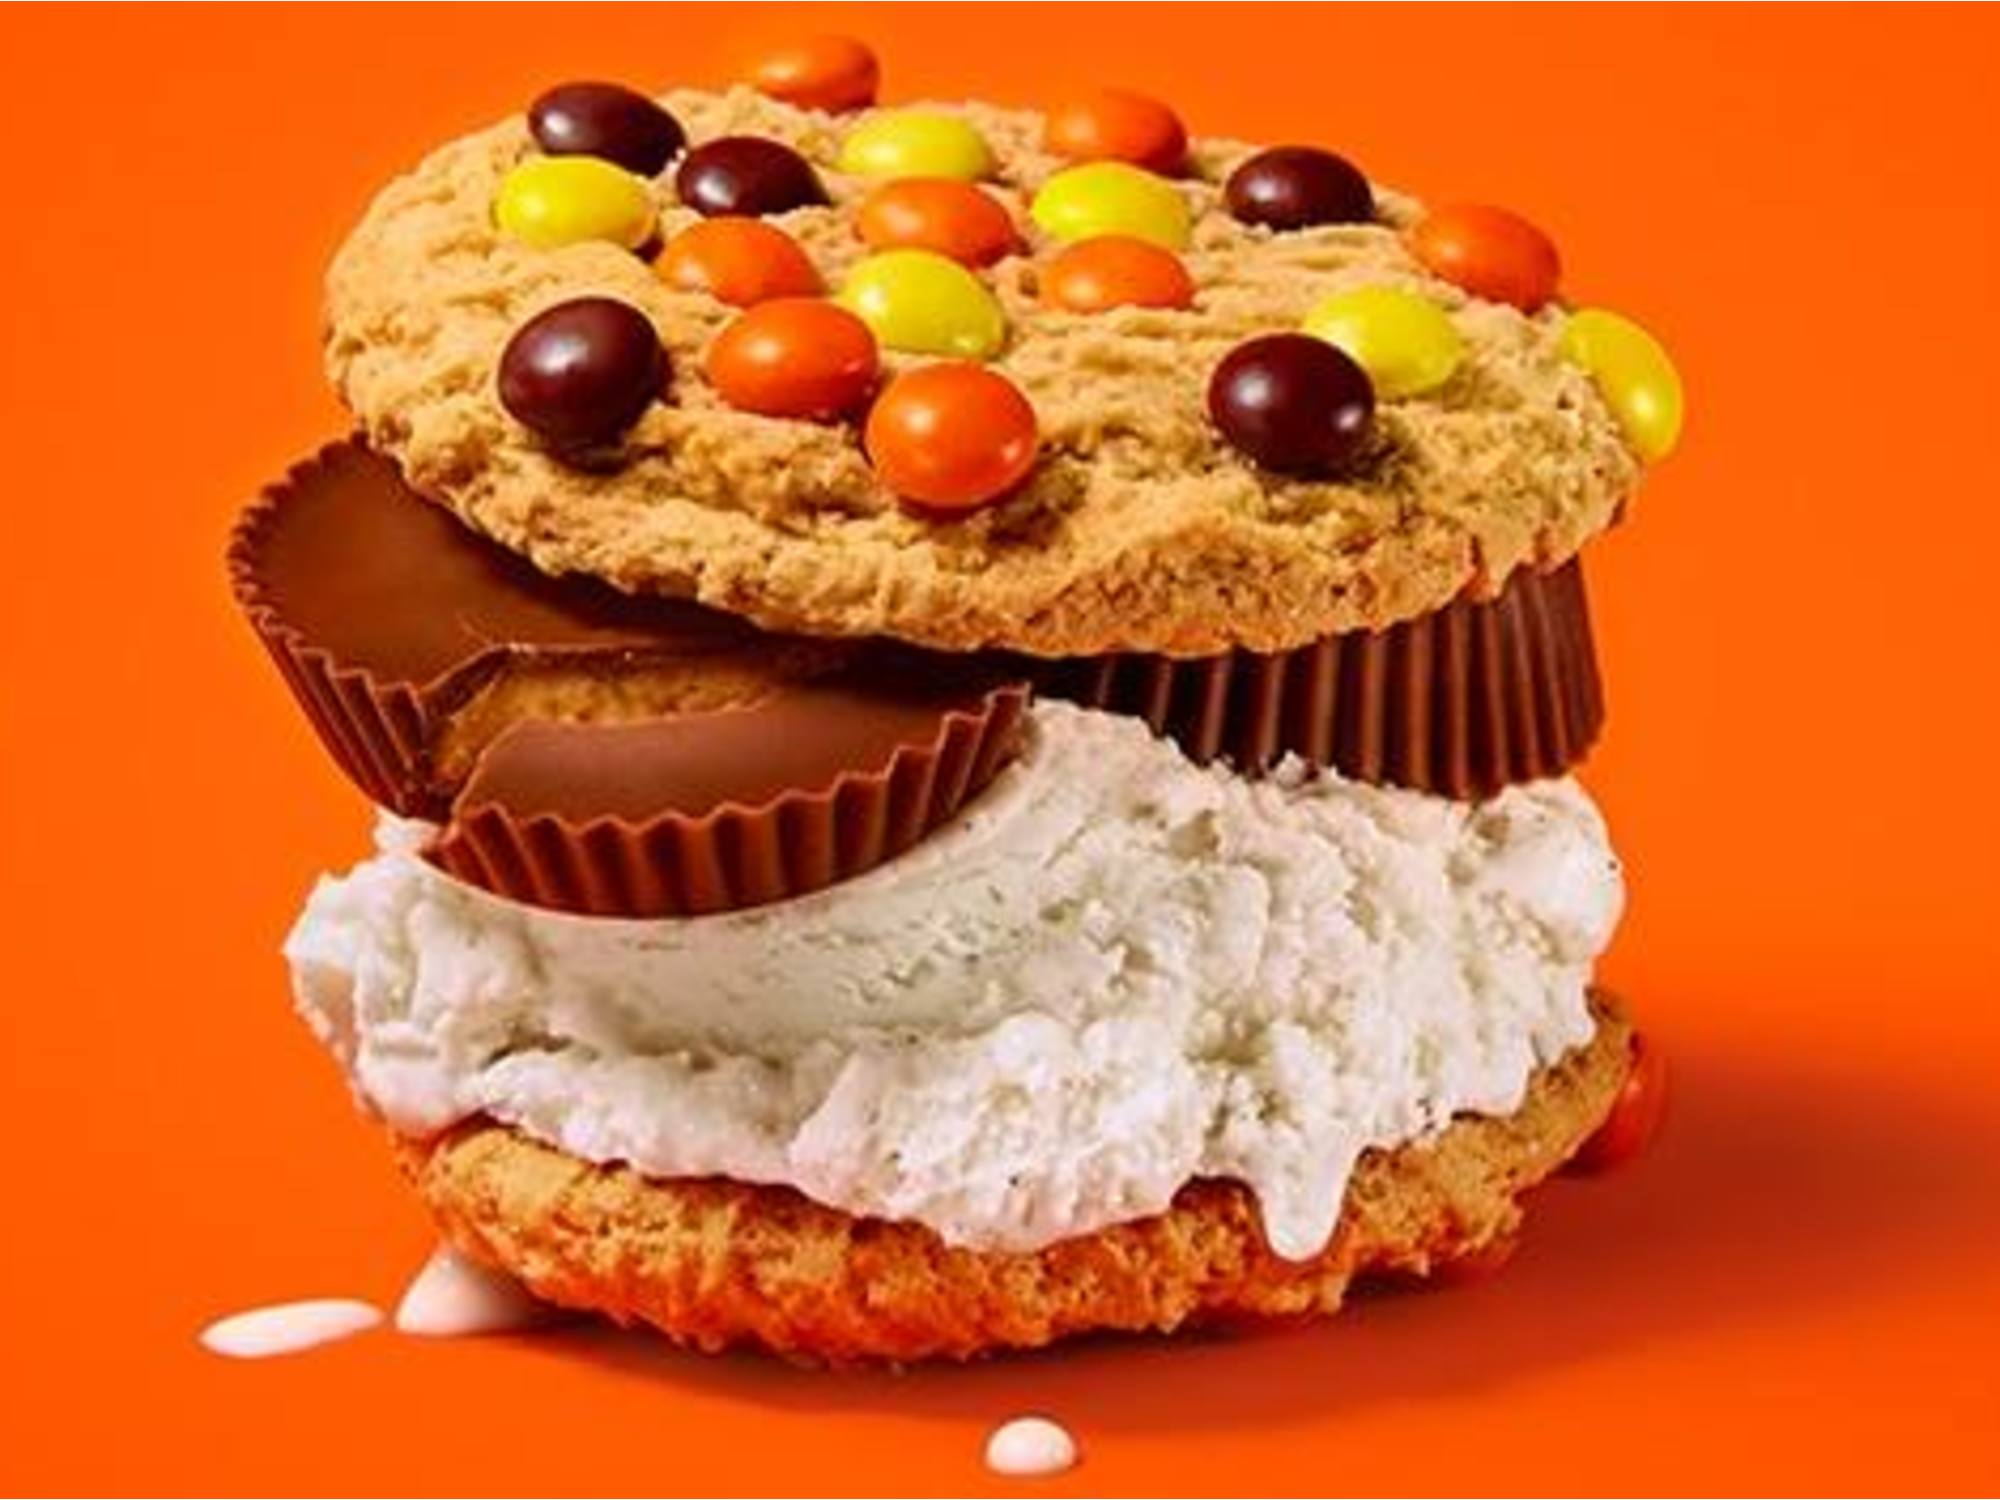 Reese's Peanut Butter Cup Delicious Cookie Sandwiches